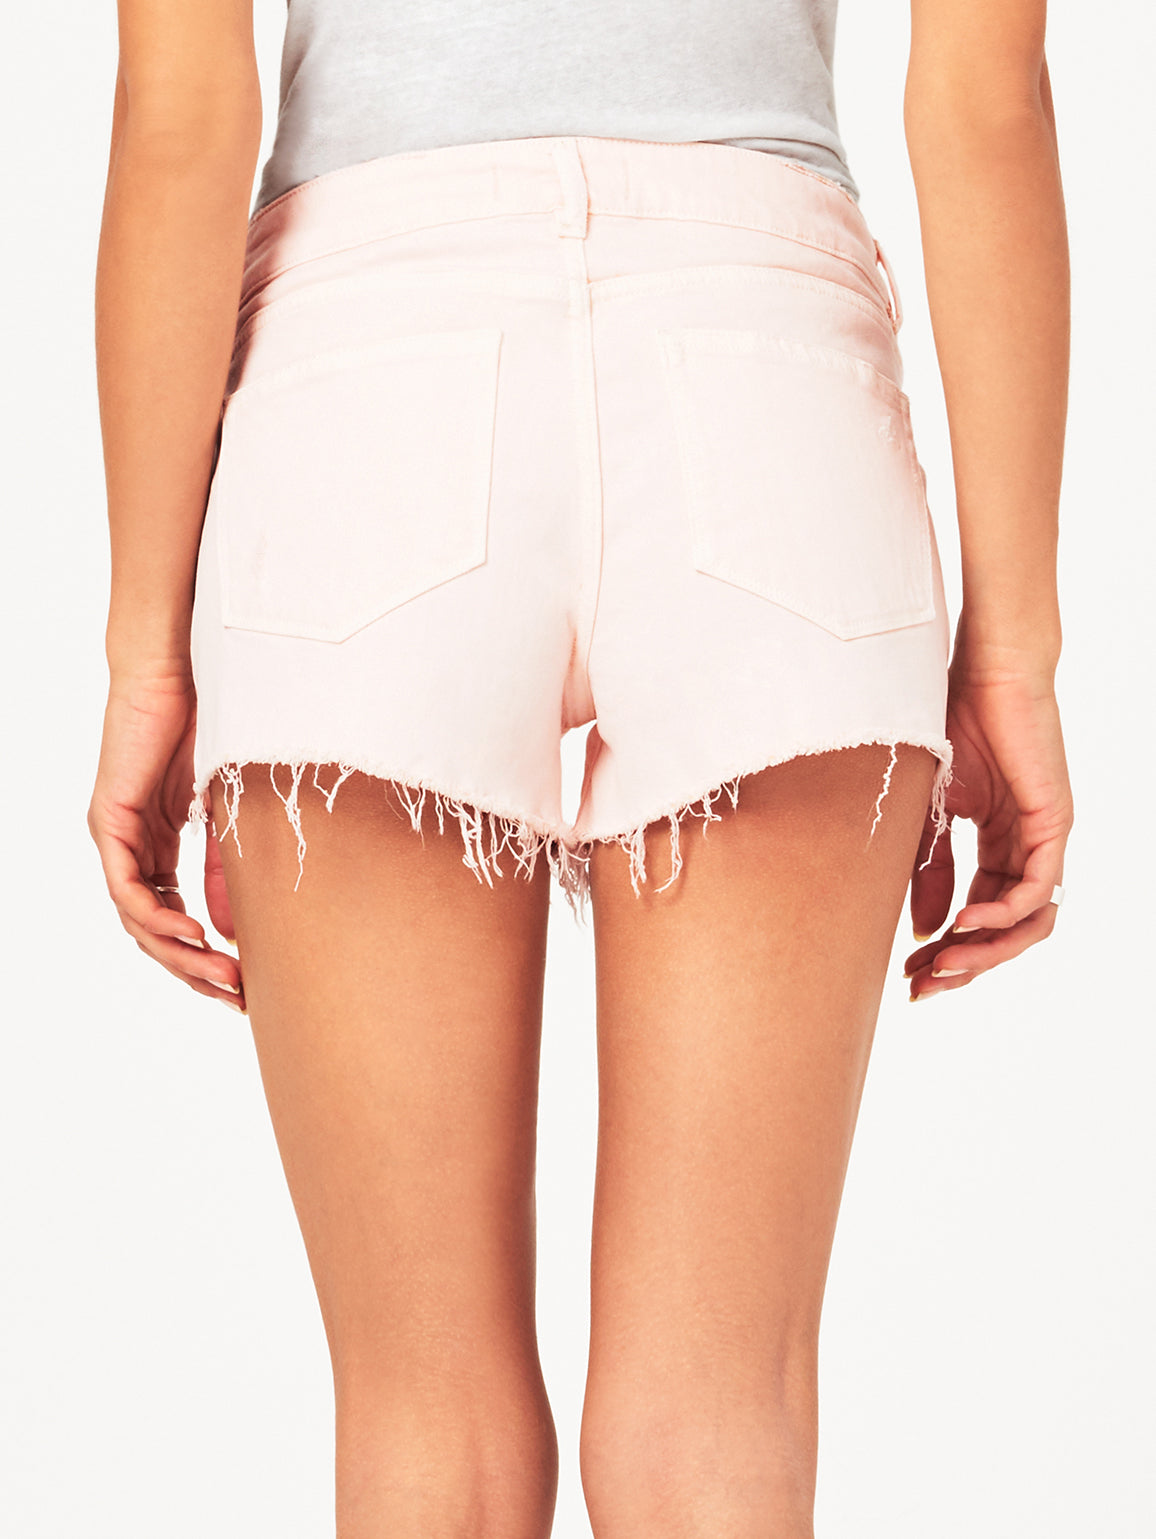 Renee Low Rise Short | Blush Pink DL 1961 Denim